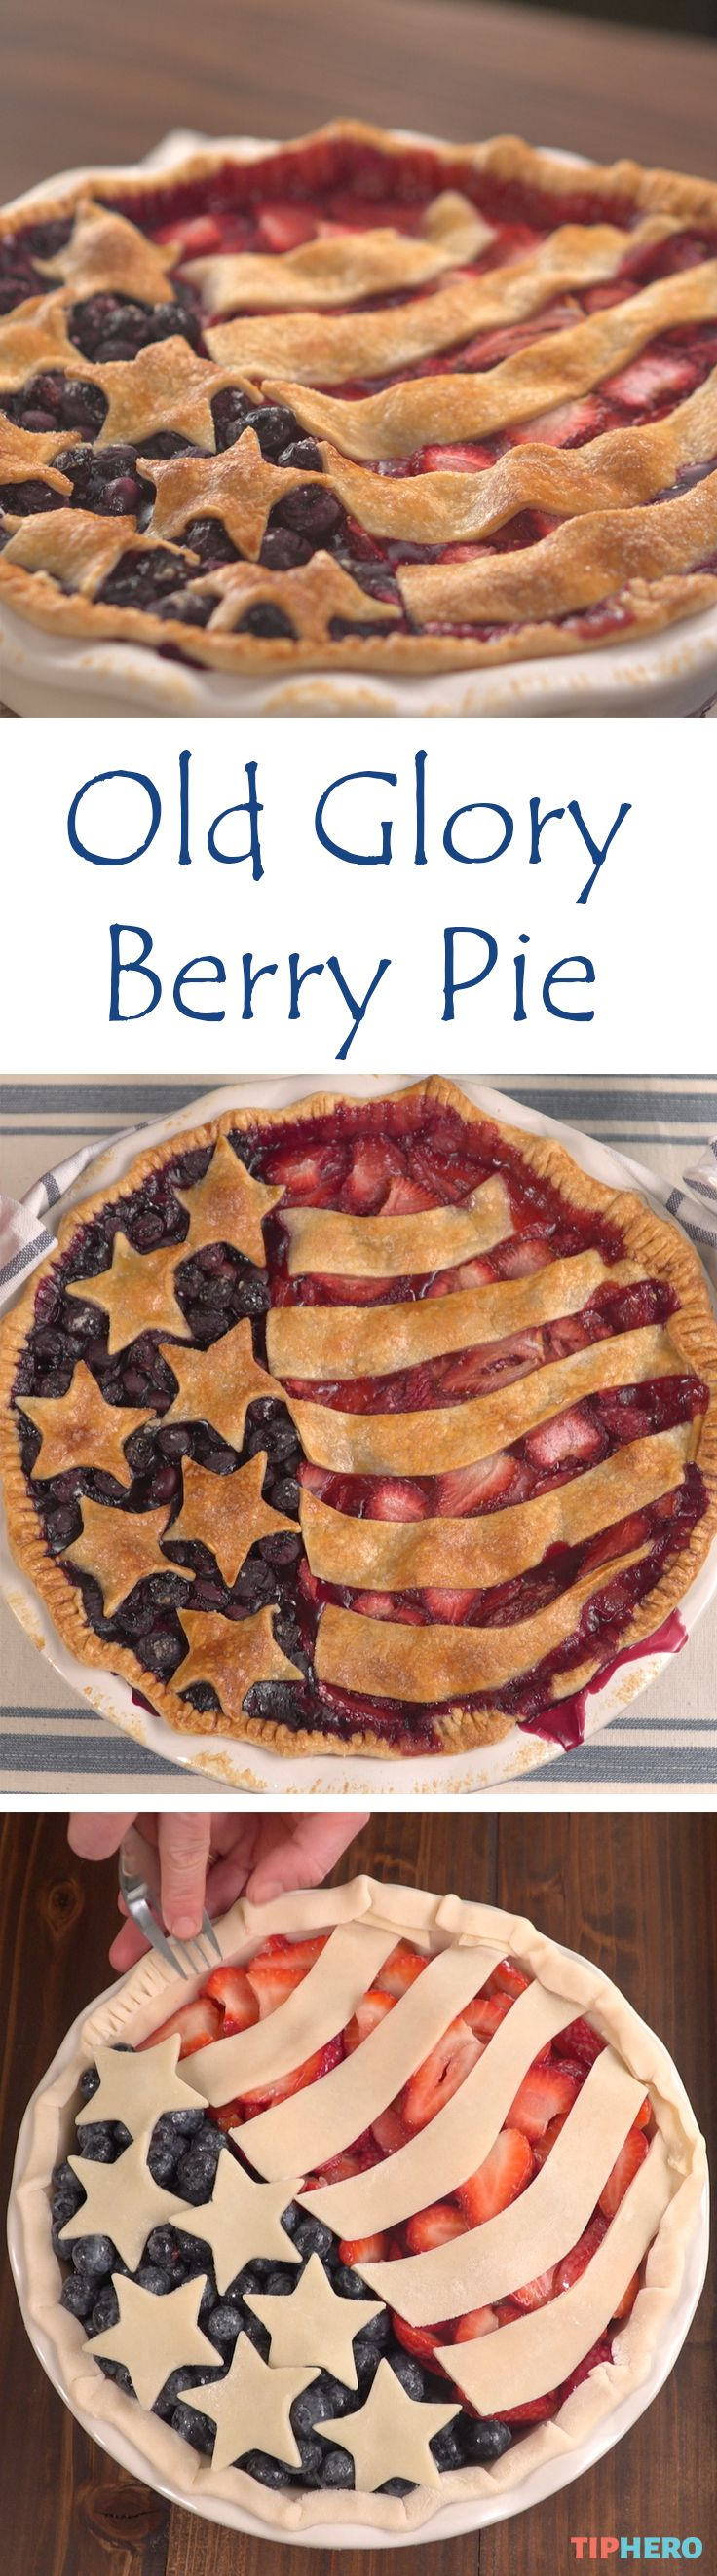 This tasty Old Glory Berry Pie pie is sure to be a hit at your Fourth of July celebration. Made with fresh blueberries and strawberries,  it just doesn't get more all-American— or more delicious! Watch how surprisingly simple this pie is to make, then give it a try this Independence Day for the most patriotic dessert yet. Click for the recipe and video.   #yum #desserts #holidayrecipes #homecooking #baking #delish